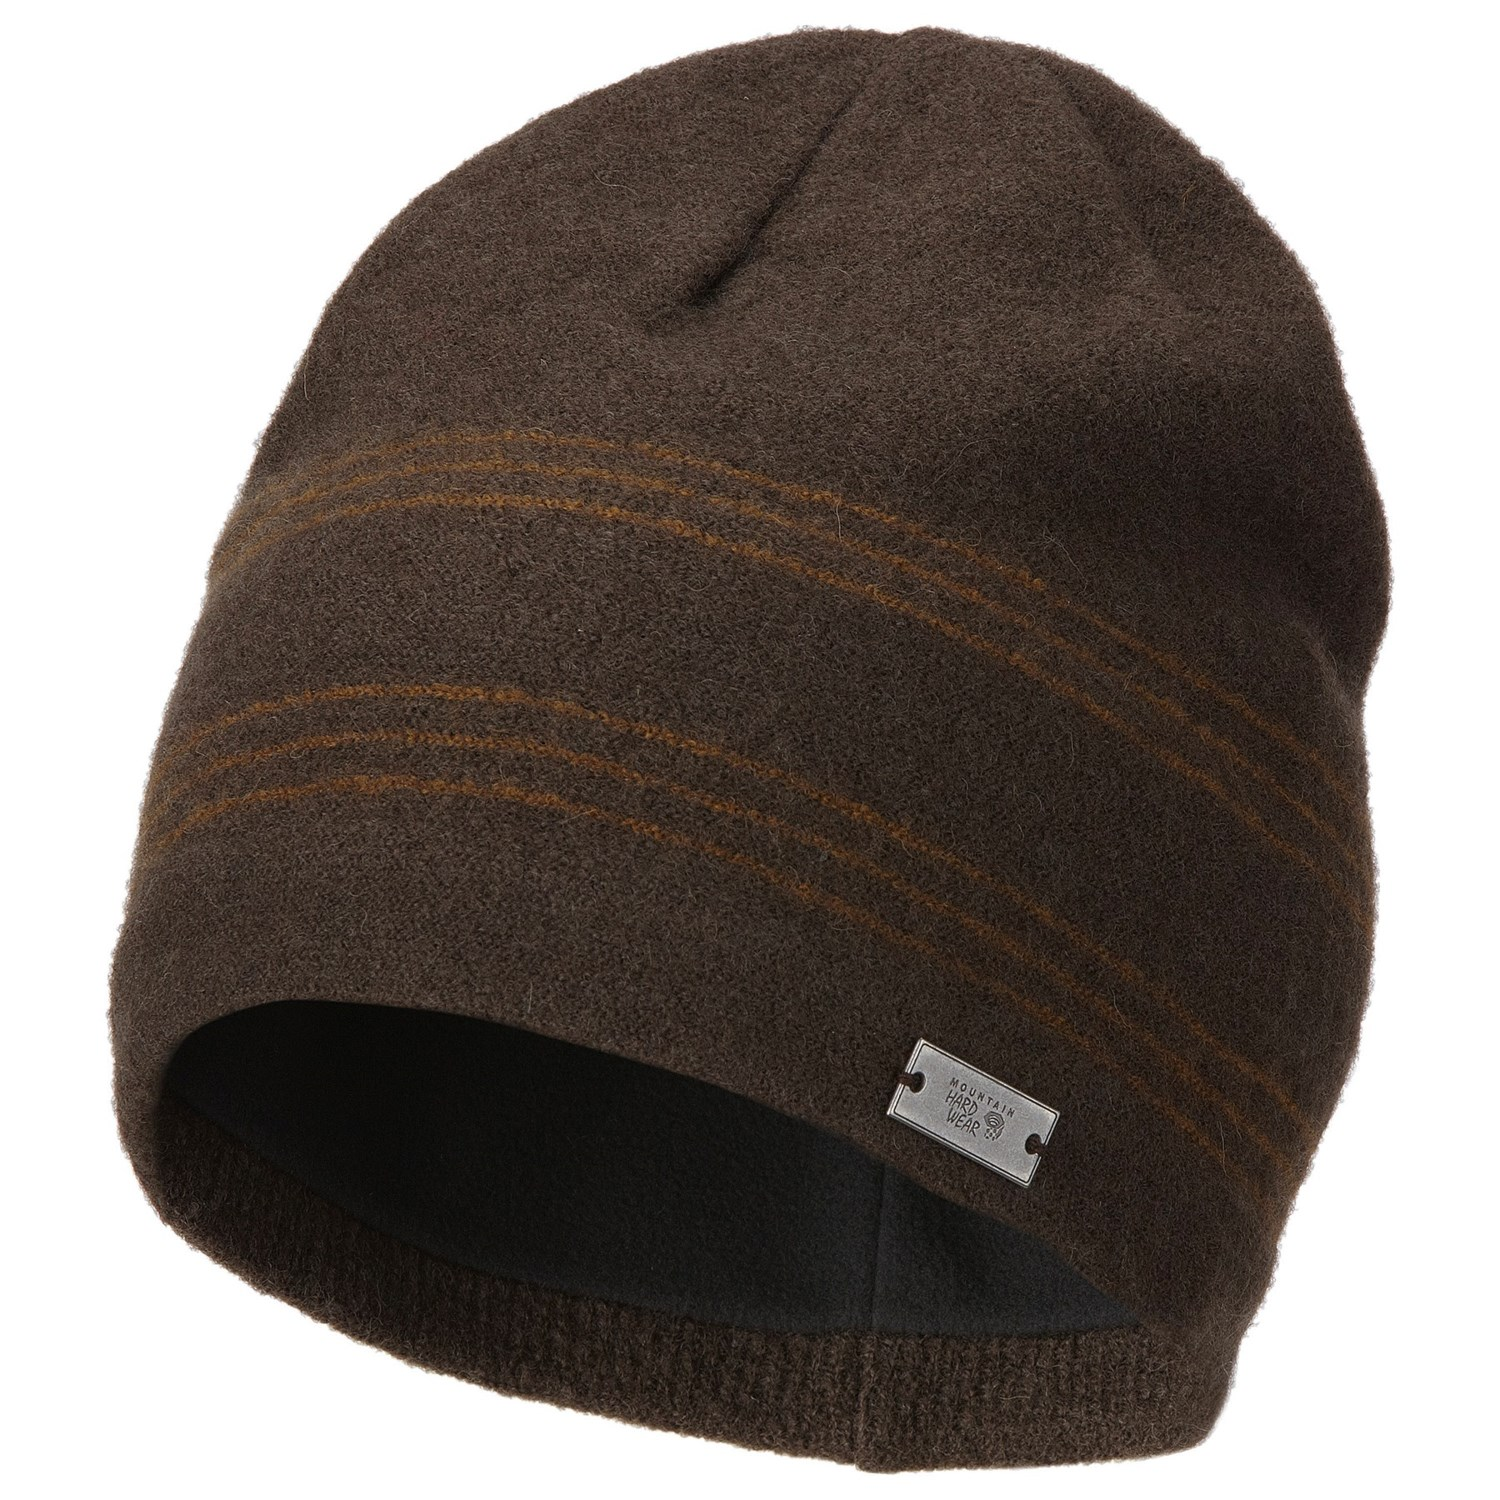 Shop online for Men's Beanies: Knit Caps & Winter Hats at vip7fps.tk Find wool knits & cotton blends. Free Shipping. Free Returns. All the time.